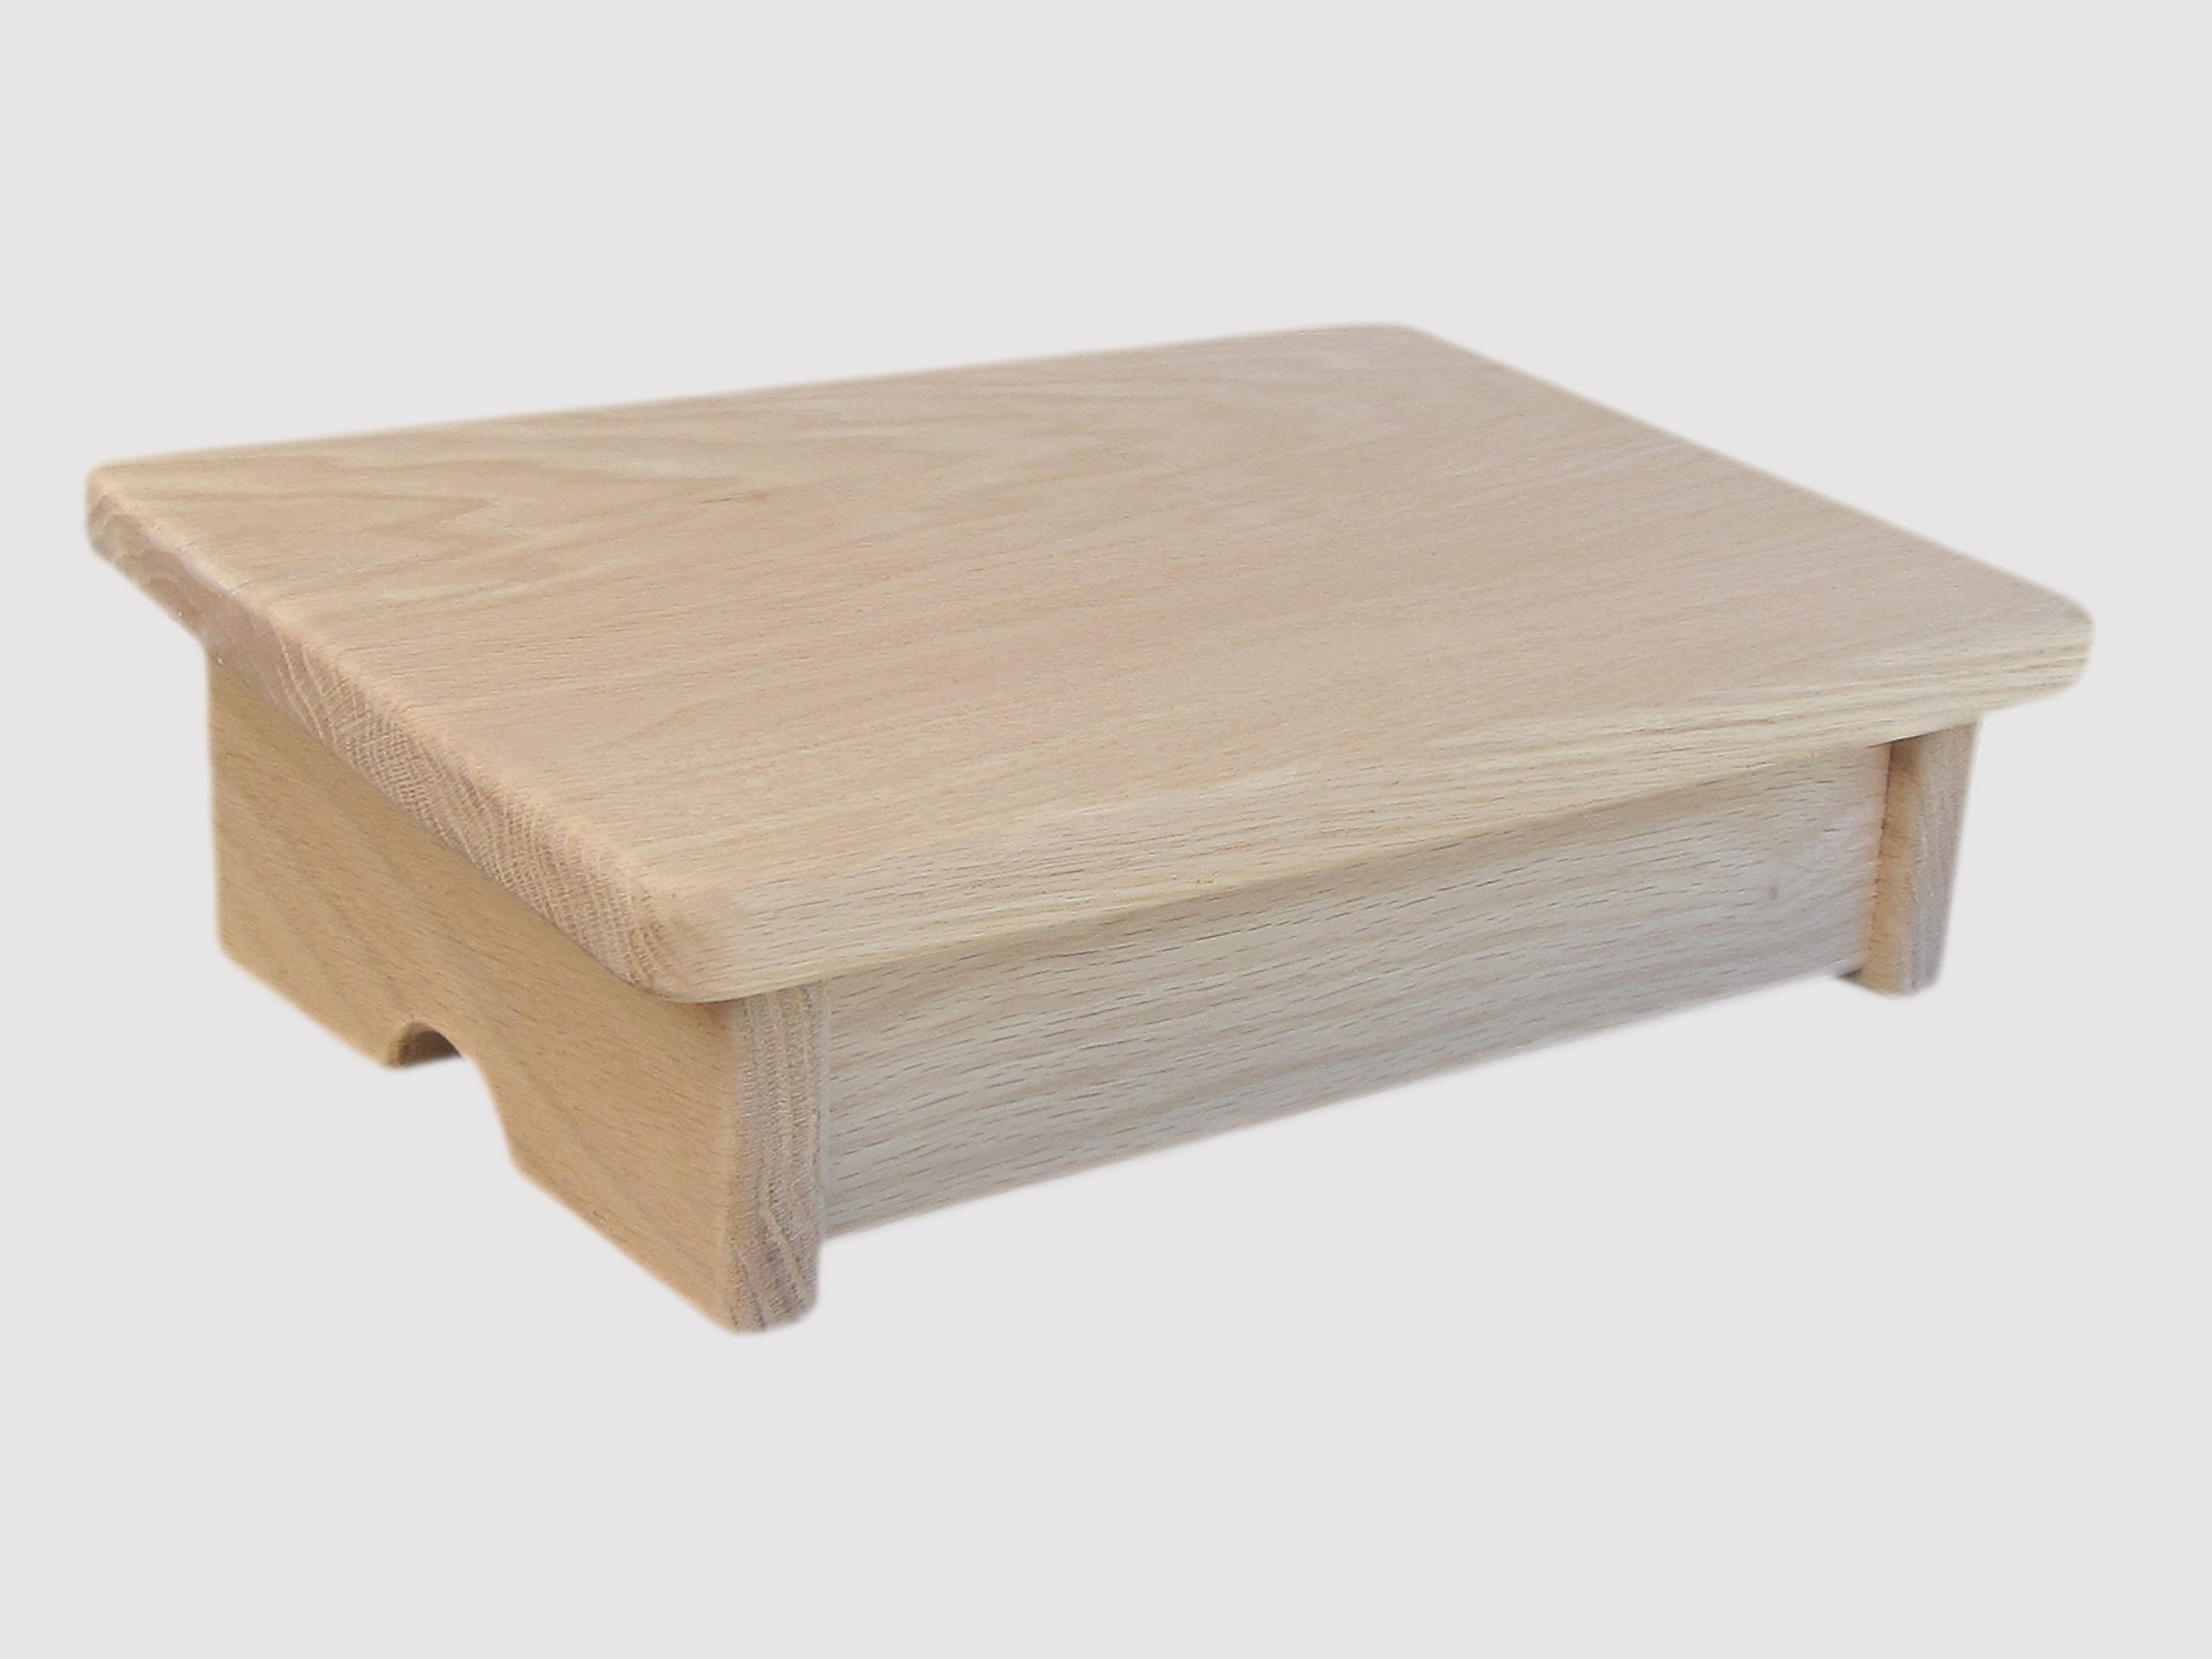 Comfort Foot Stool, 4'' Tall, Oak, Unfinished (Made in the USA) by KR Ideas